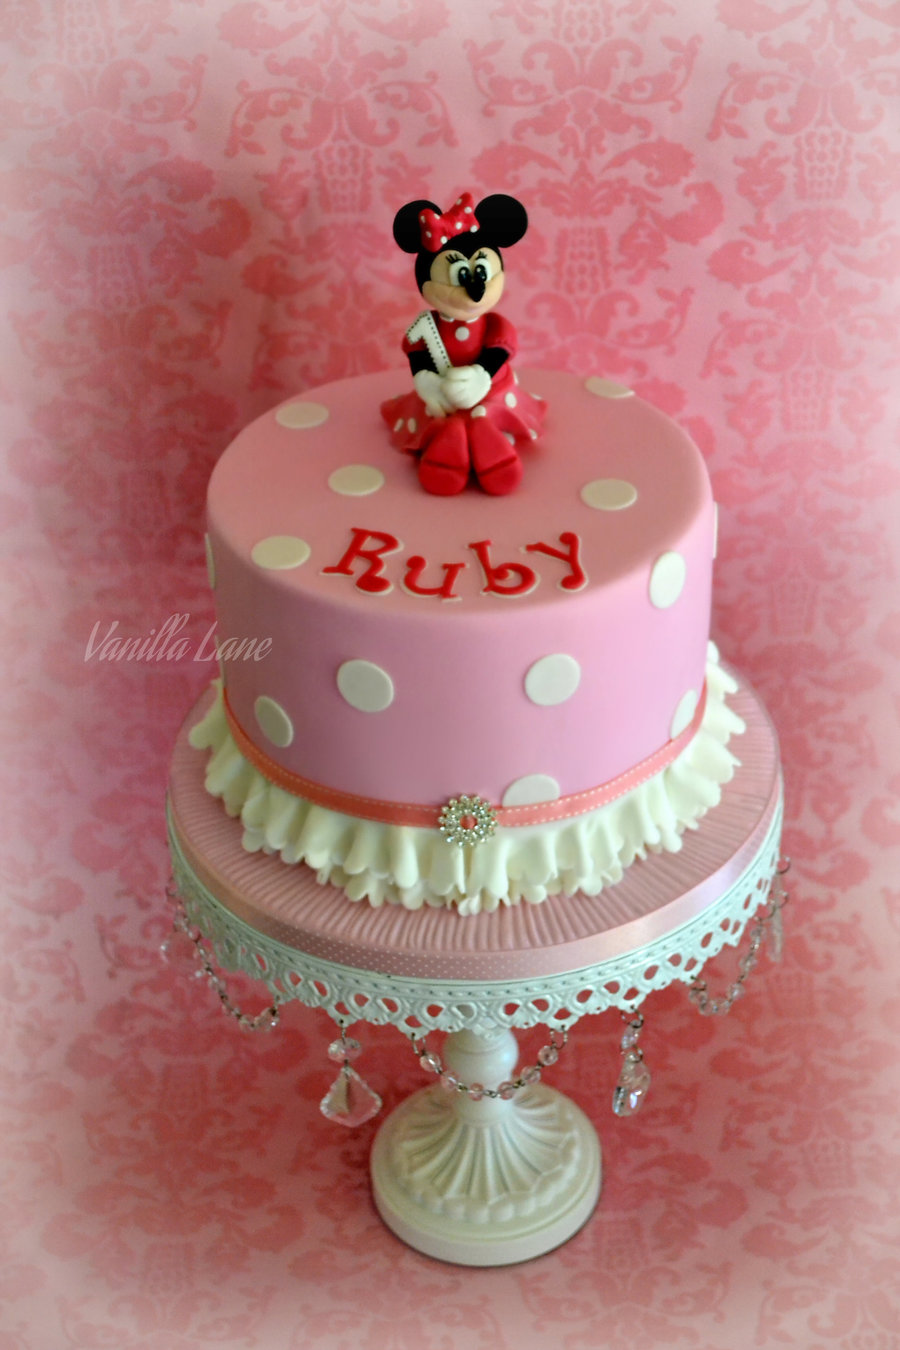 Minnie Mouse Themed 1St Birthday Cake I Love How This Cake ...